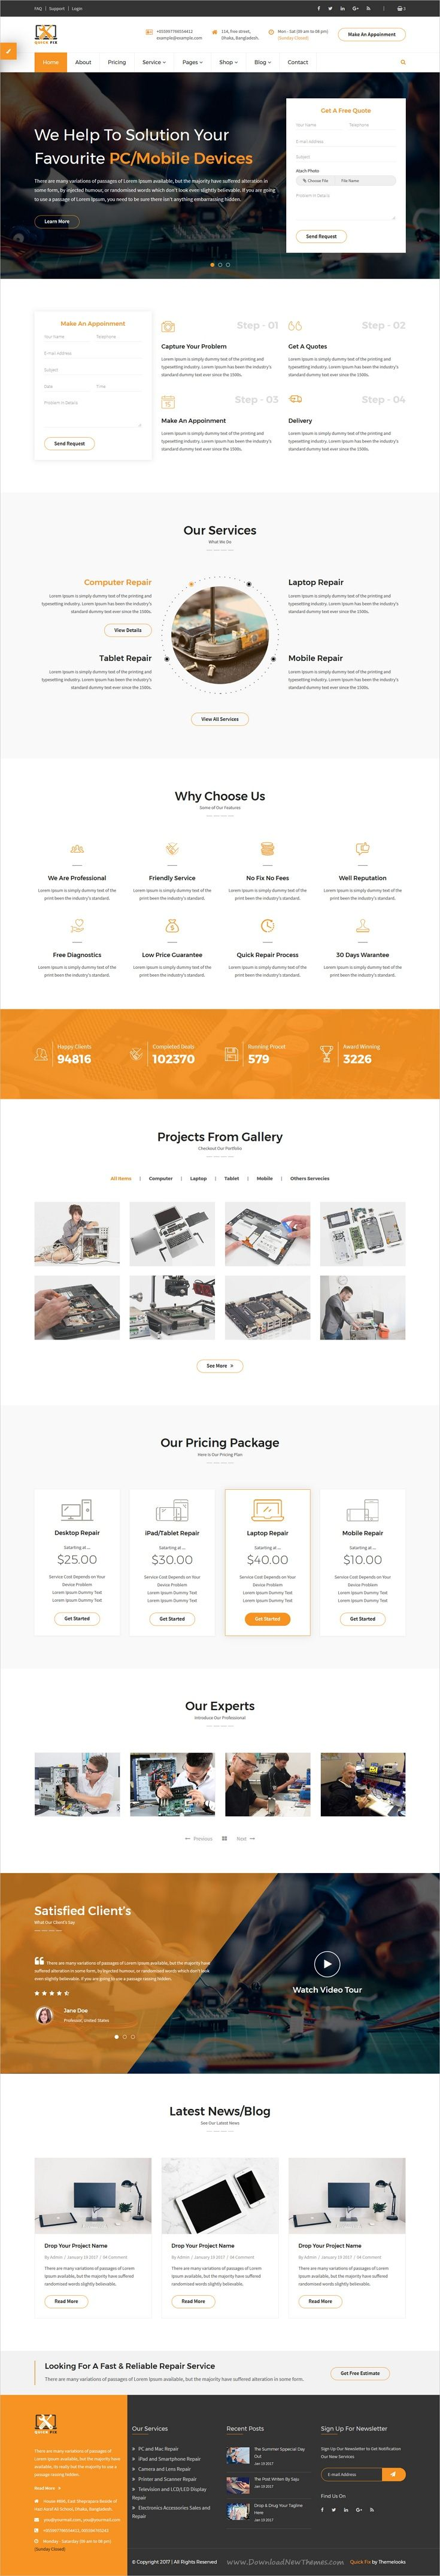 QuickFix is a multipurpose responsive #HTML Template for electronics #repair and #servicing centers website download now➩ https://themeforest.net/item/quickfix-multipurpose-servicing-and-repairing-html-template/19749274?ref=Datasata